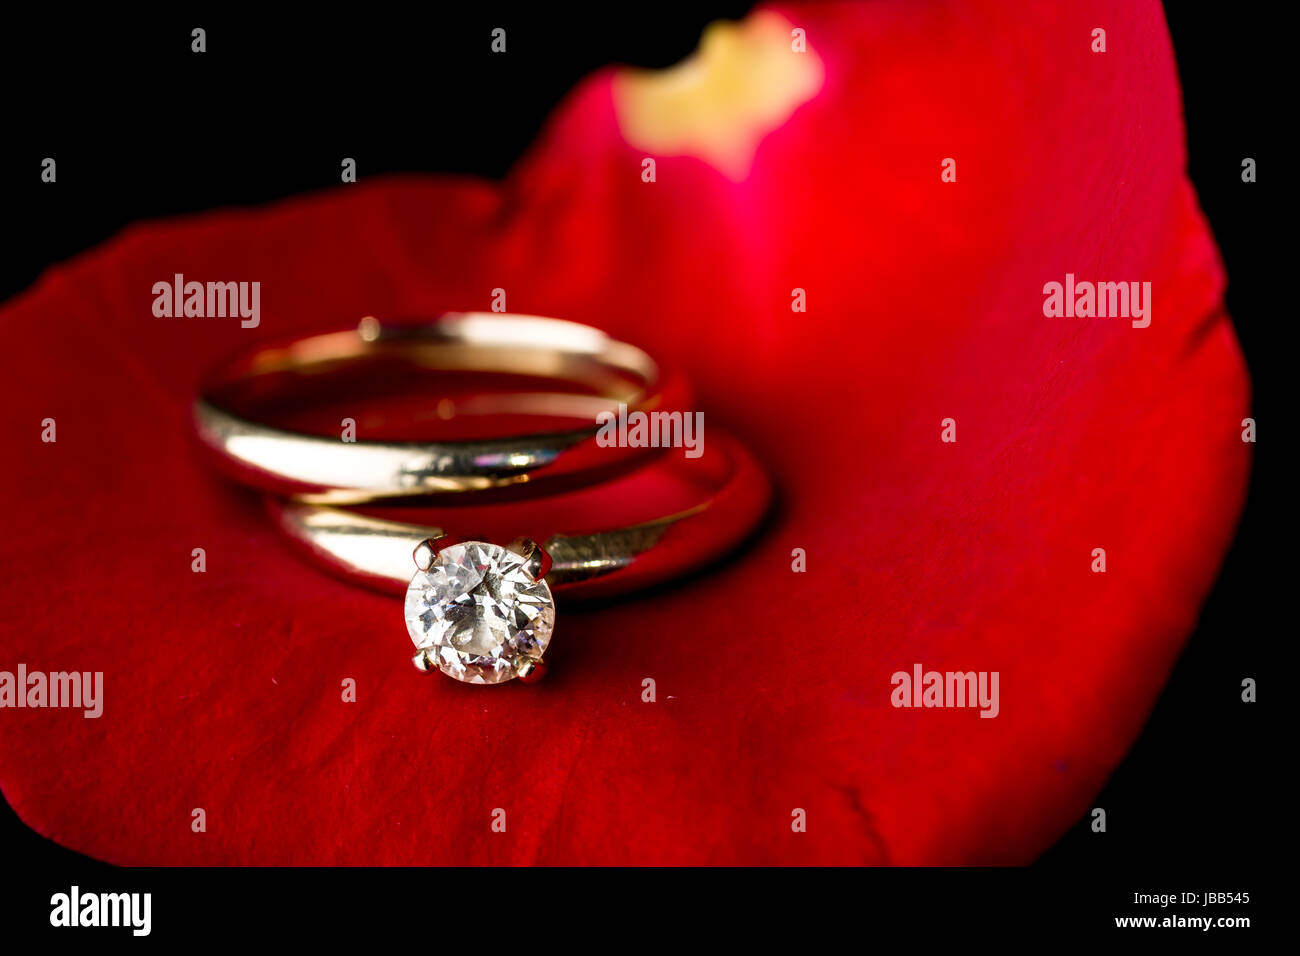 The Perfect Valentine S Day Gift An Engagement Ring On A Red Rose